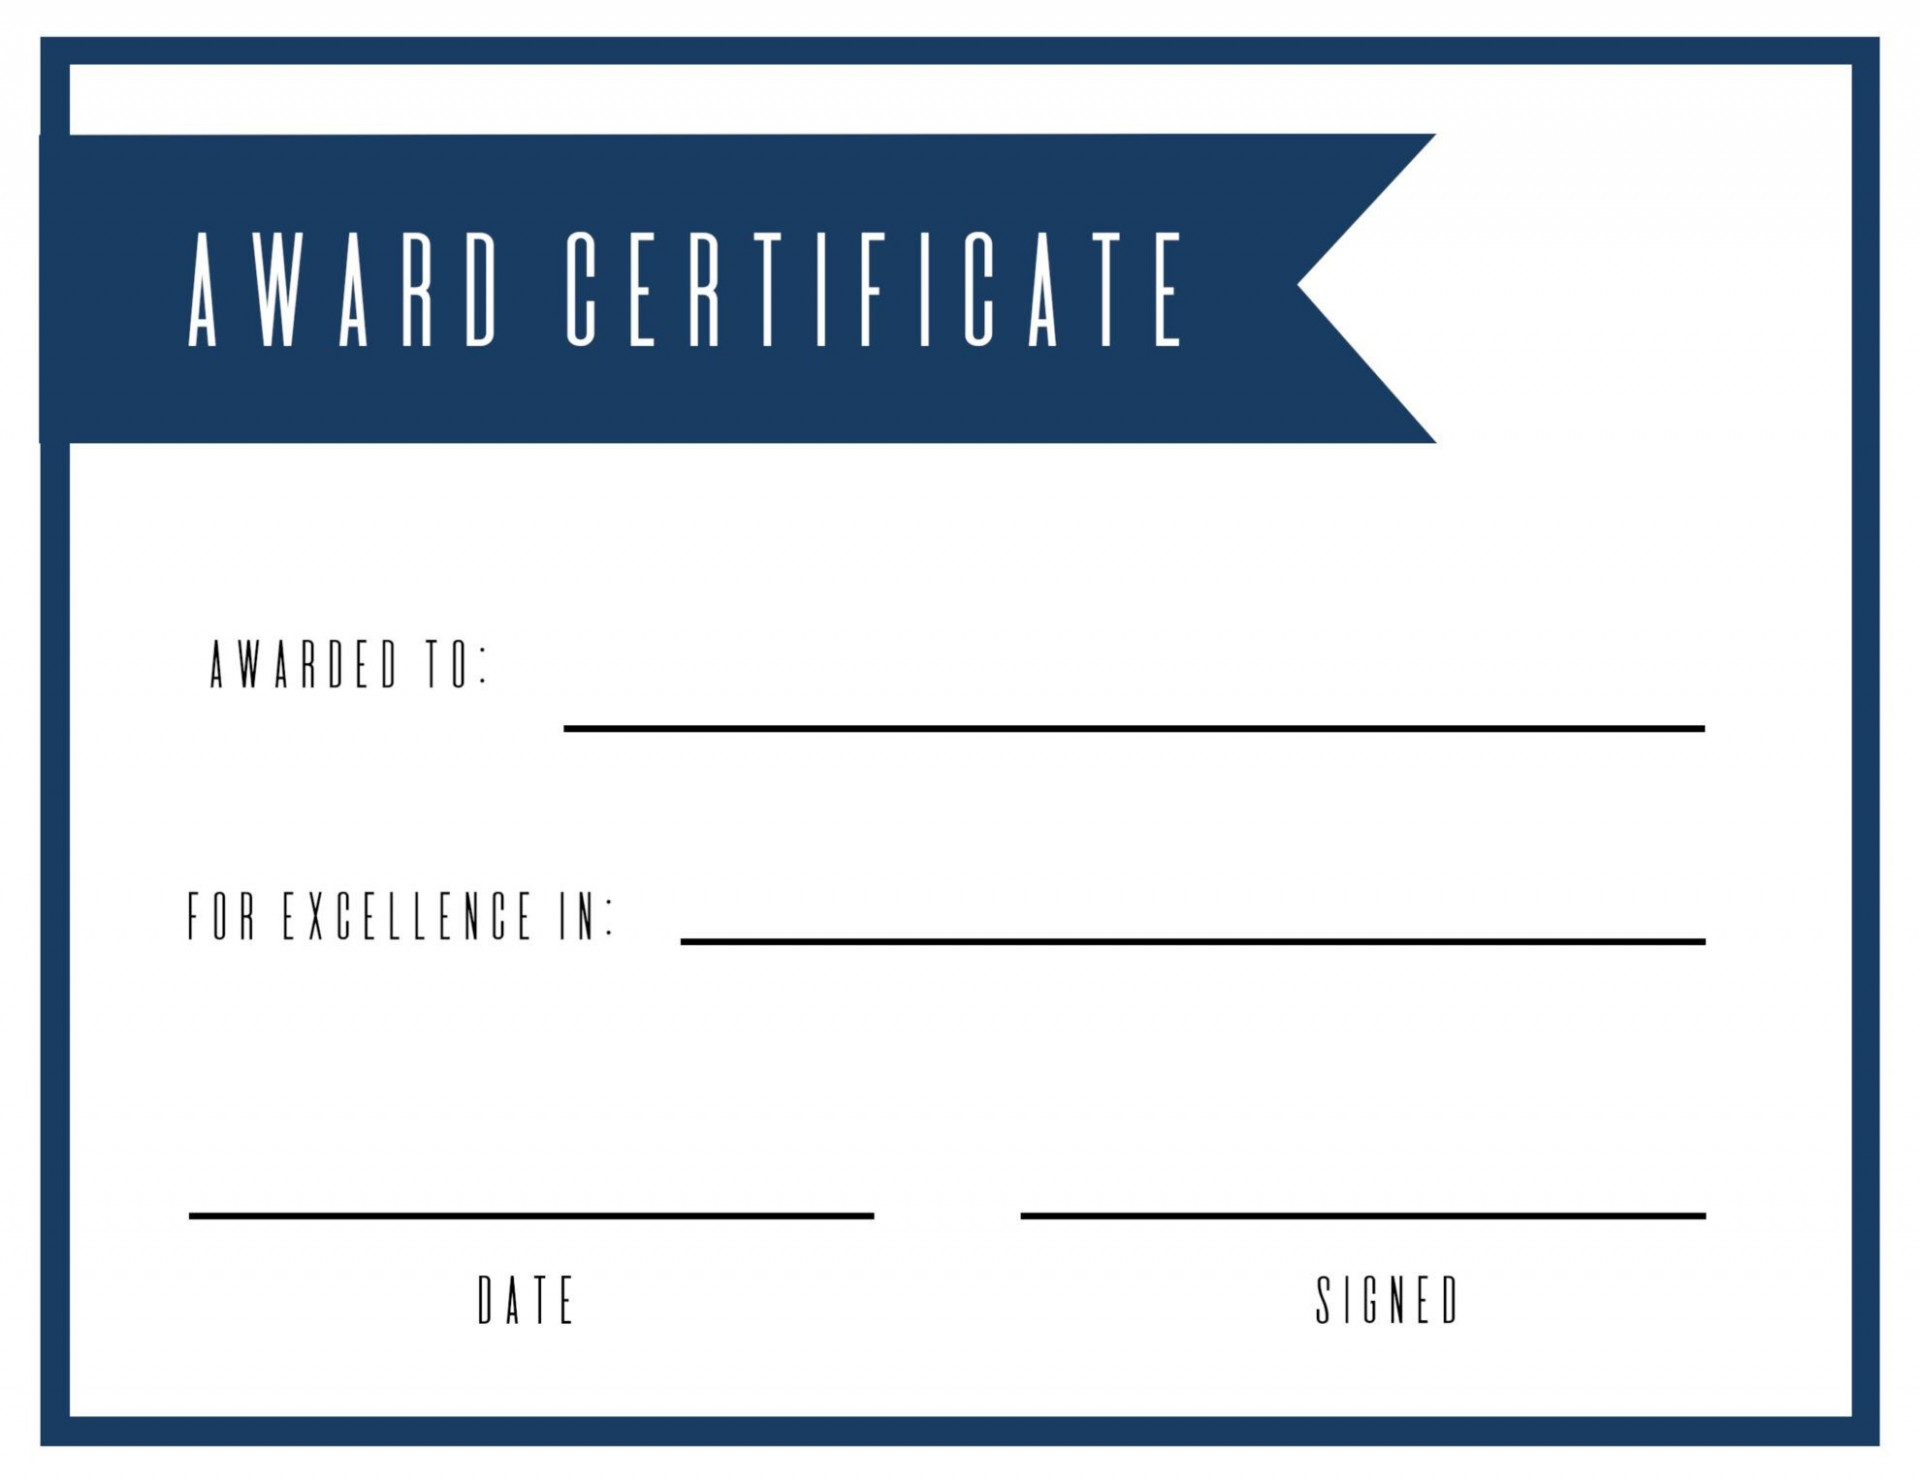 006 Astounding Free Printable Blank Certificate Template High Def  Templates Gift Of Achievement1920